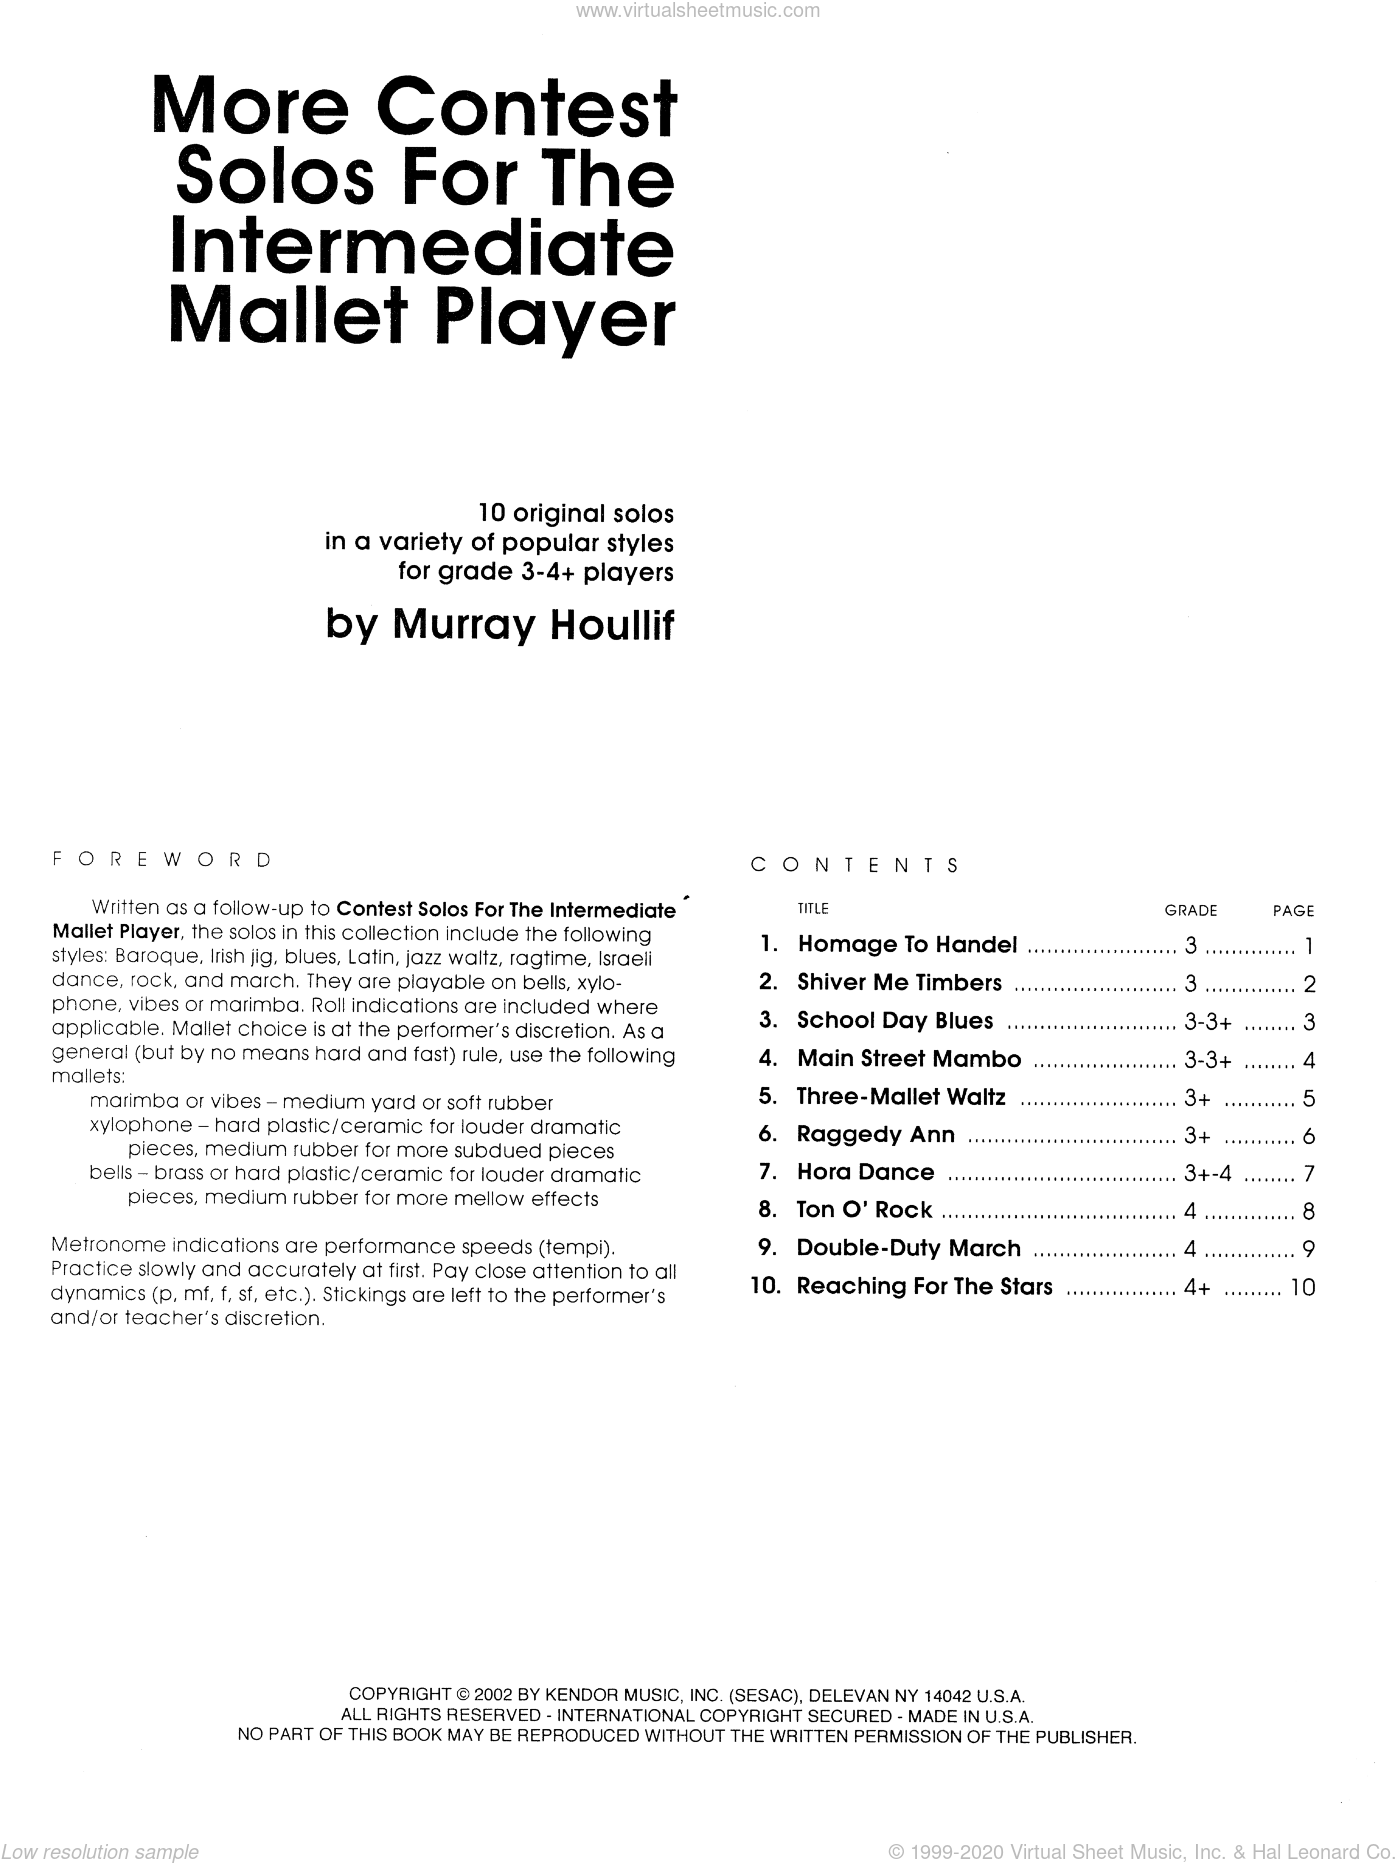 More Contest Solos For The Intermediate Mallet Player sheet music for percussions by Houllif, classical score, intermediate skill level